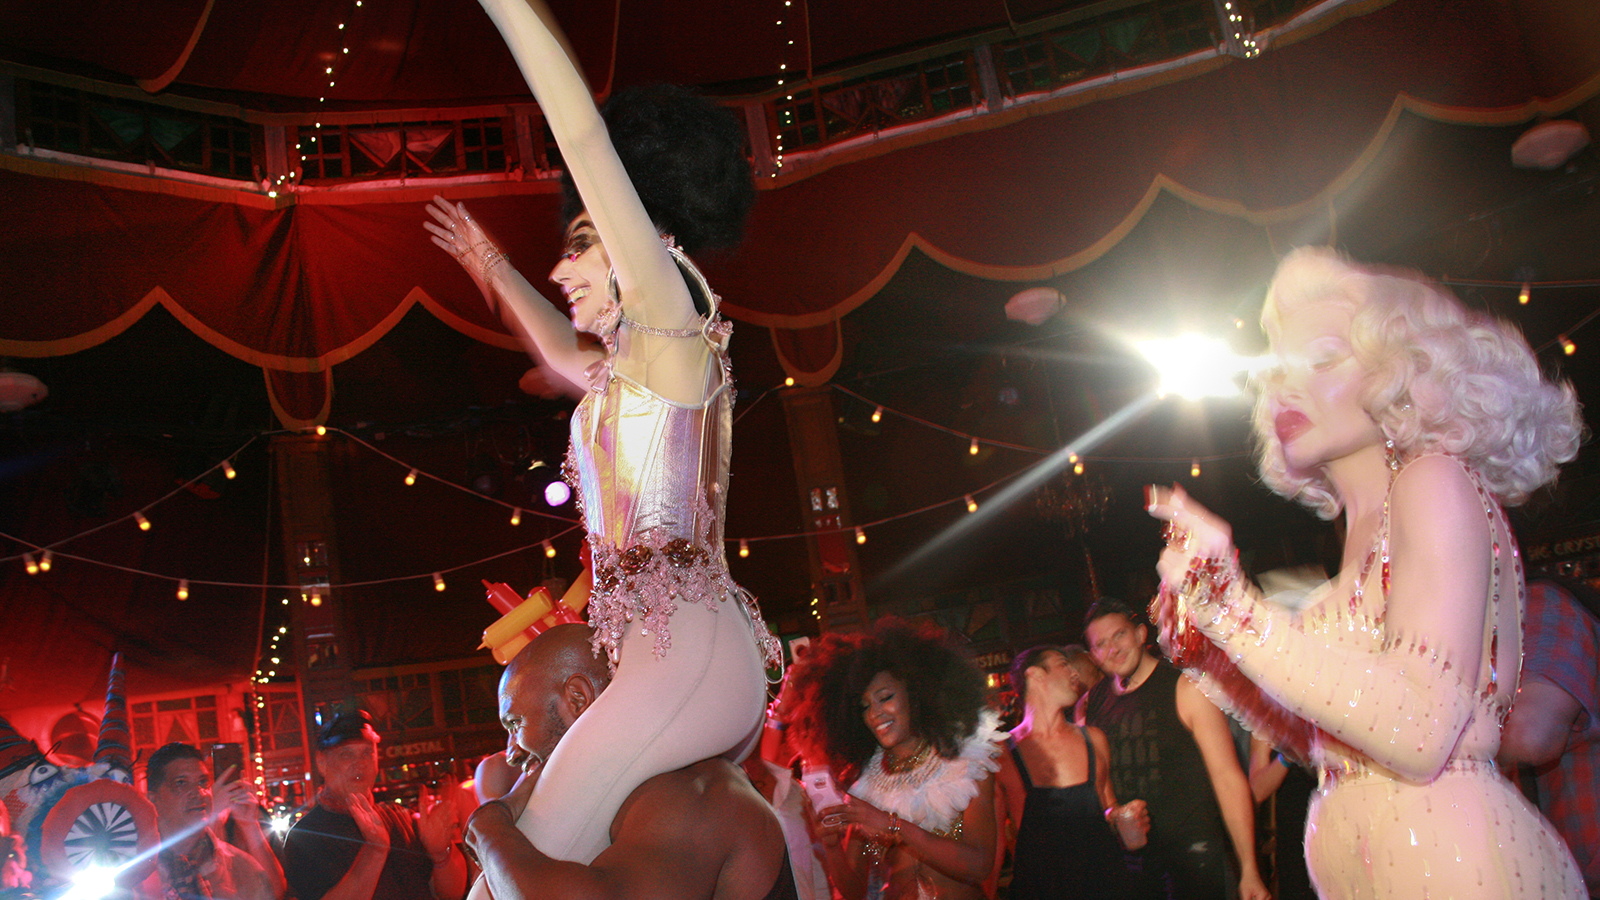 [Susanne Bartsch Presents Spiegeltent Follies] Photo by Brennan Cavanaugh